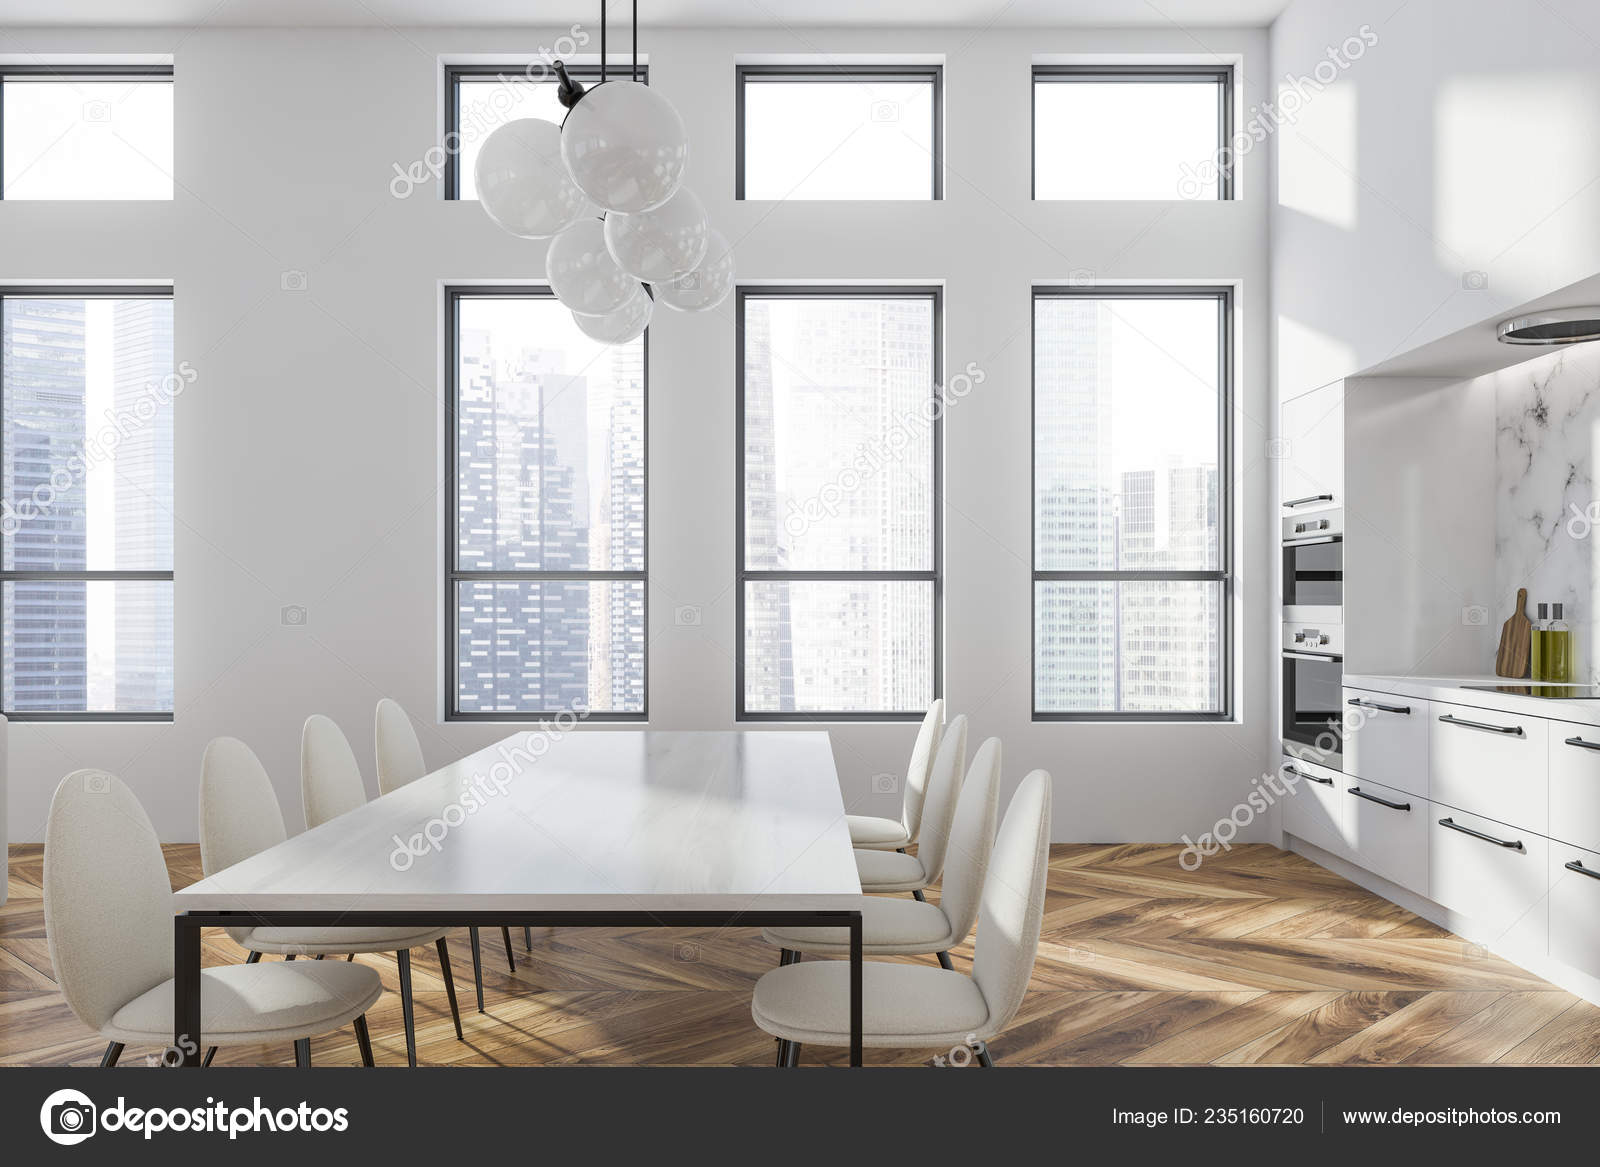 white table and chairs modern